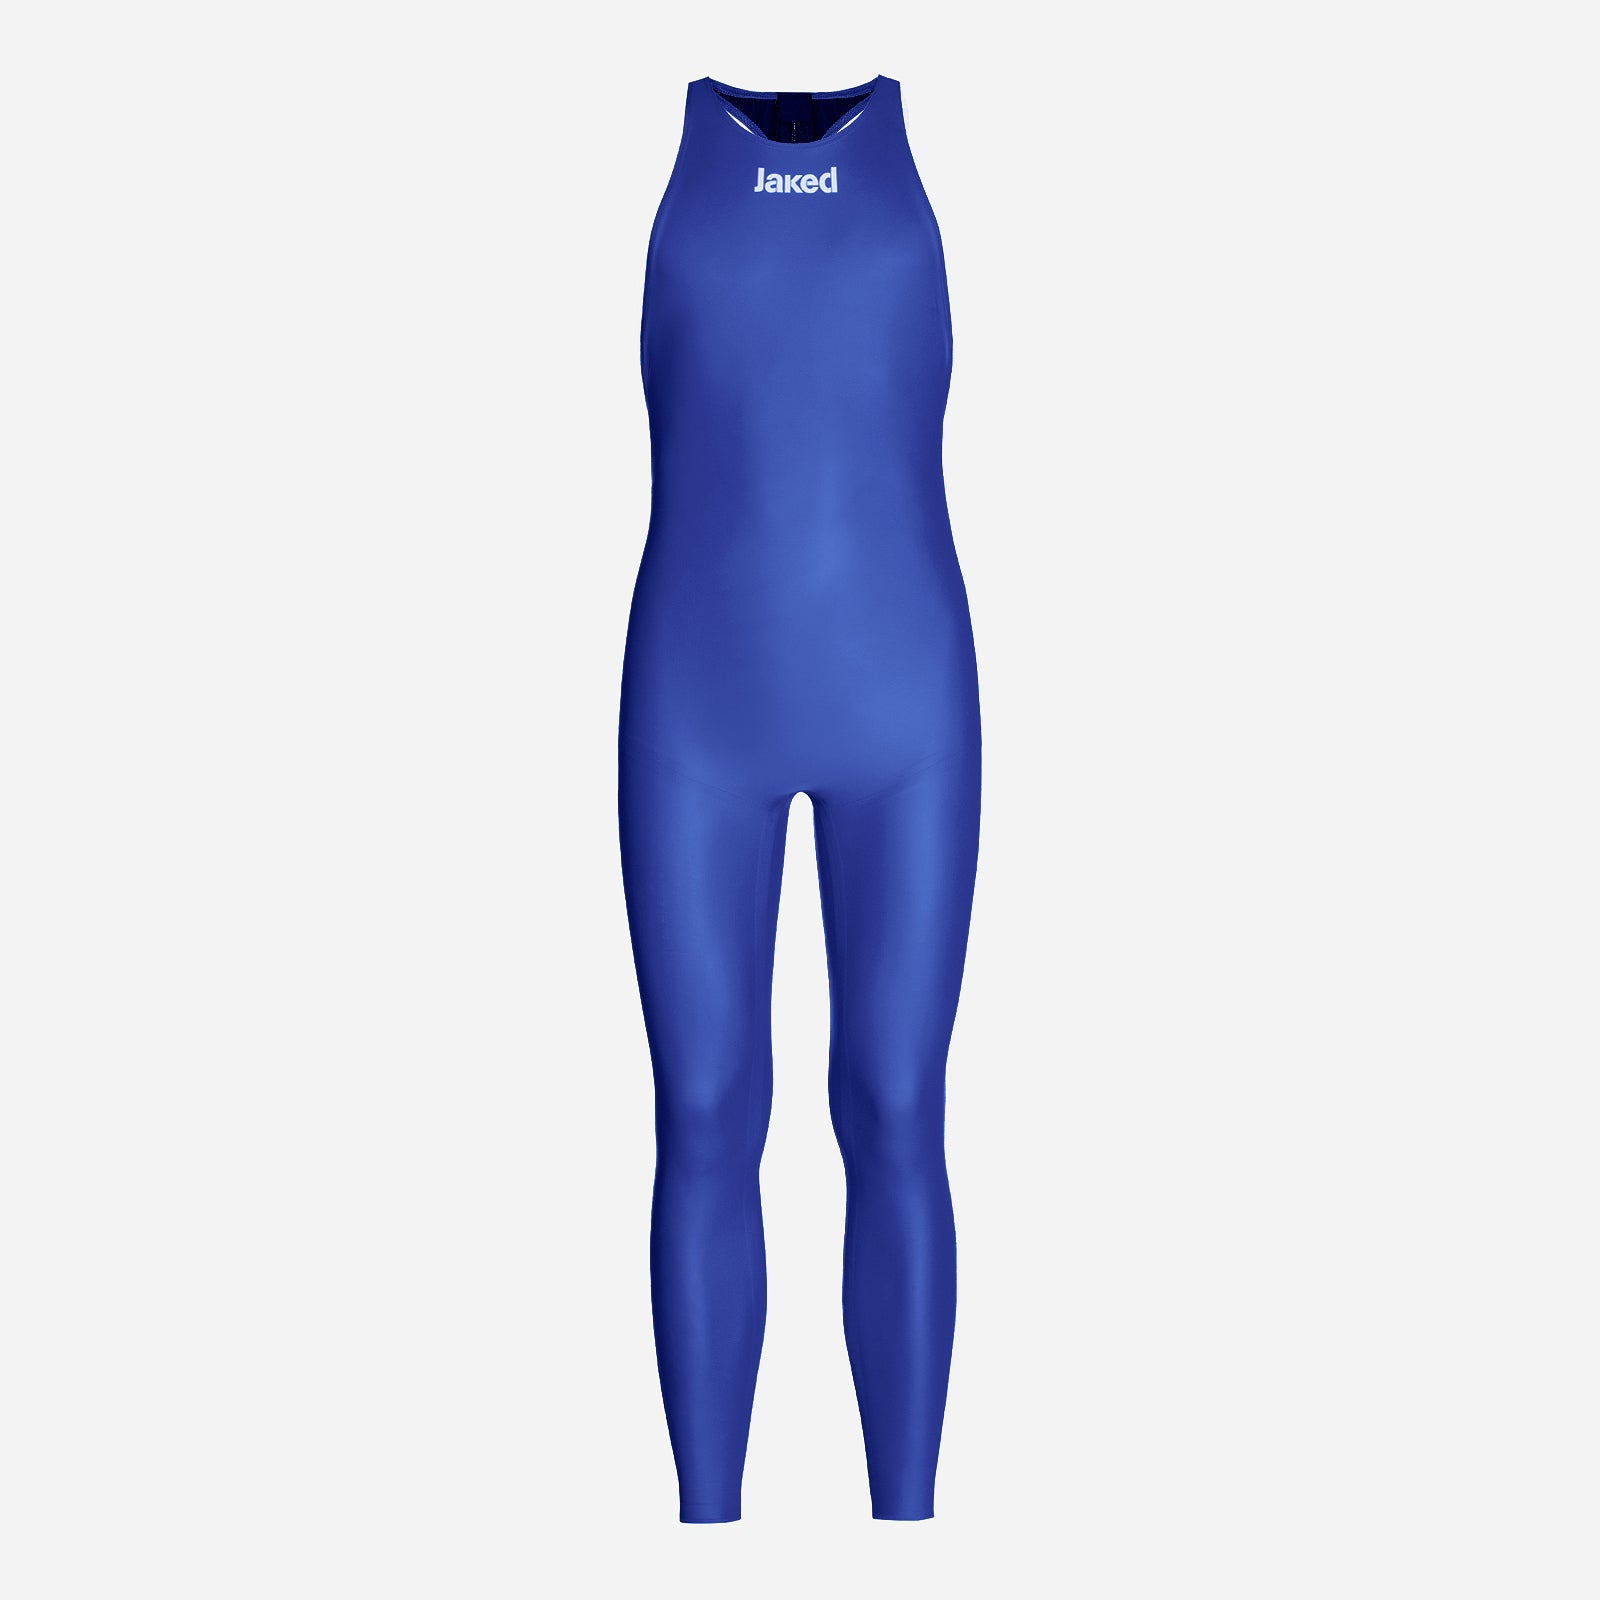 JKATANA OPEN WATER FULL BODY MAN, Jaked US Store